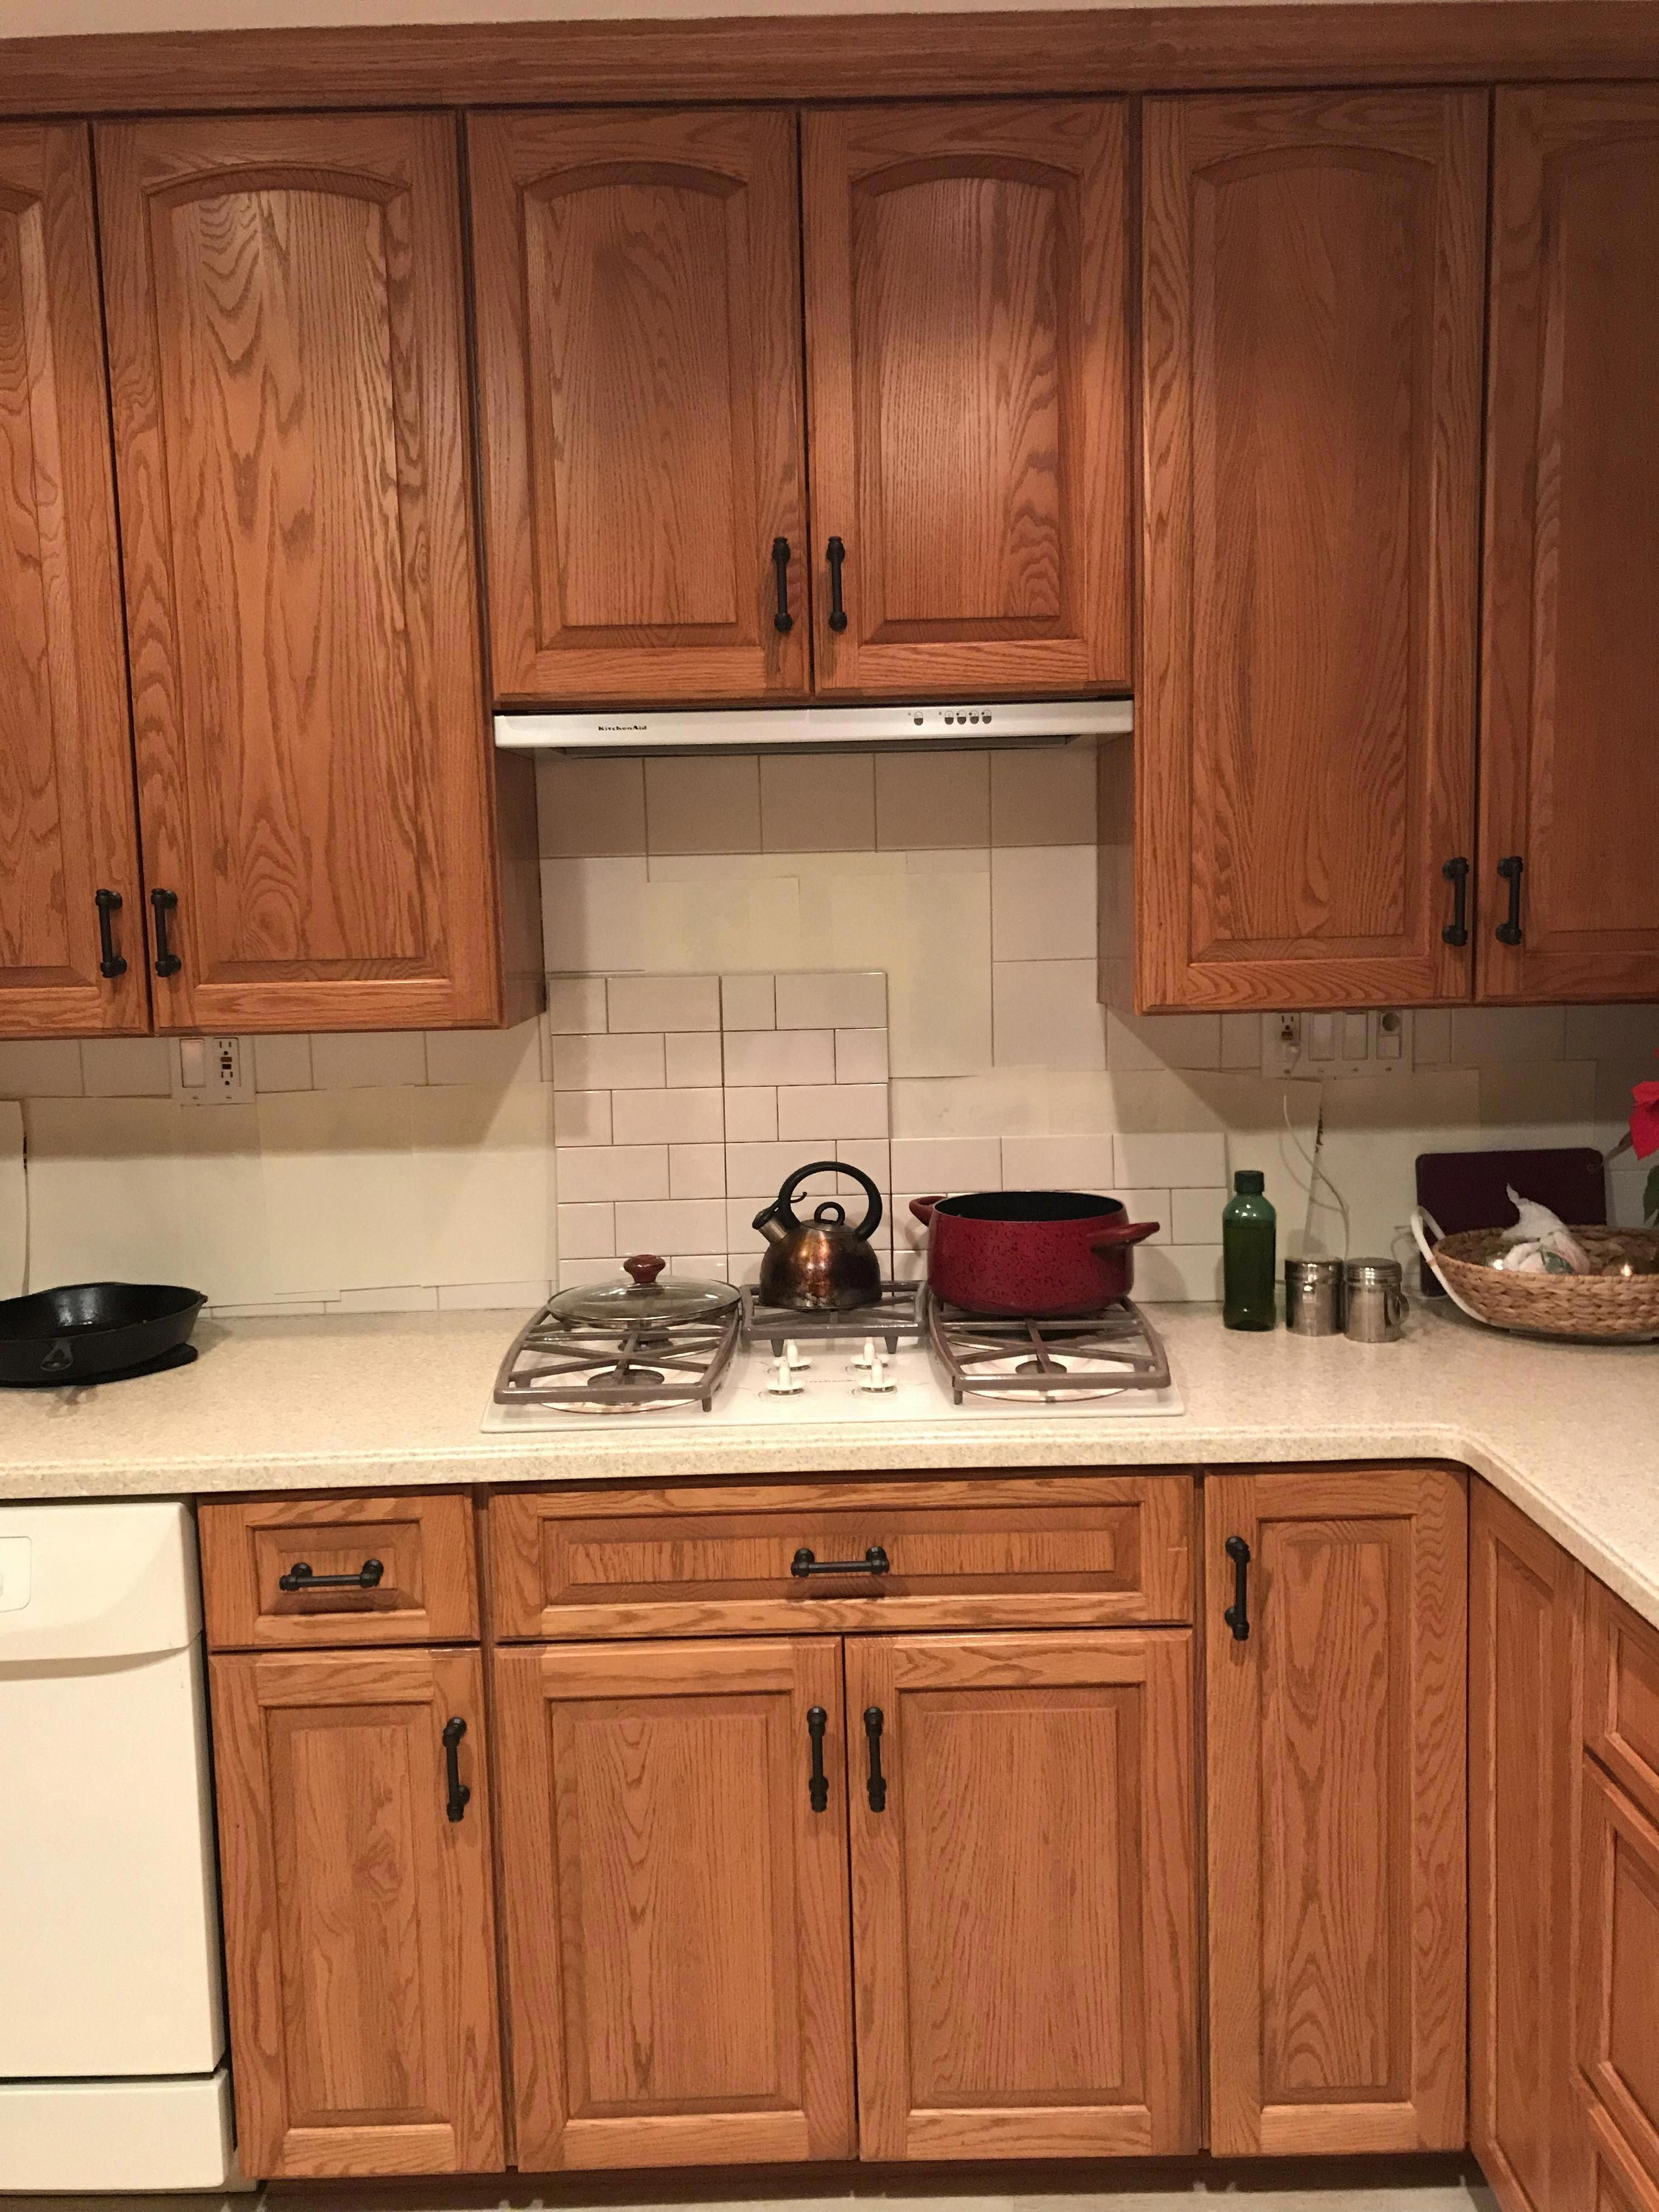 Pin On Mobile Home Kitchen Remodel